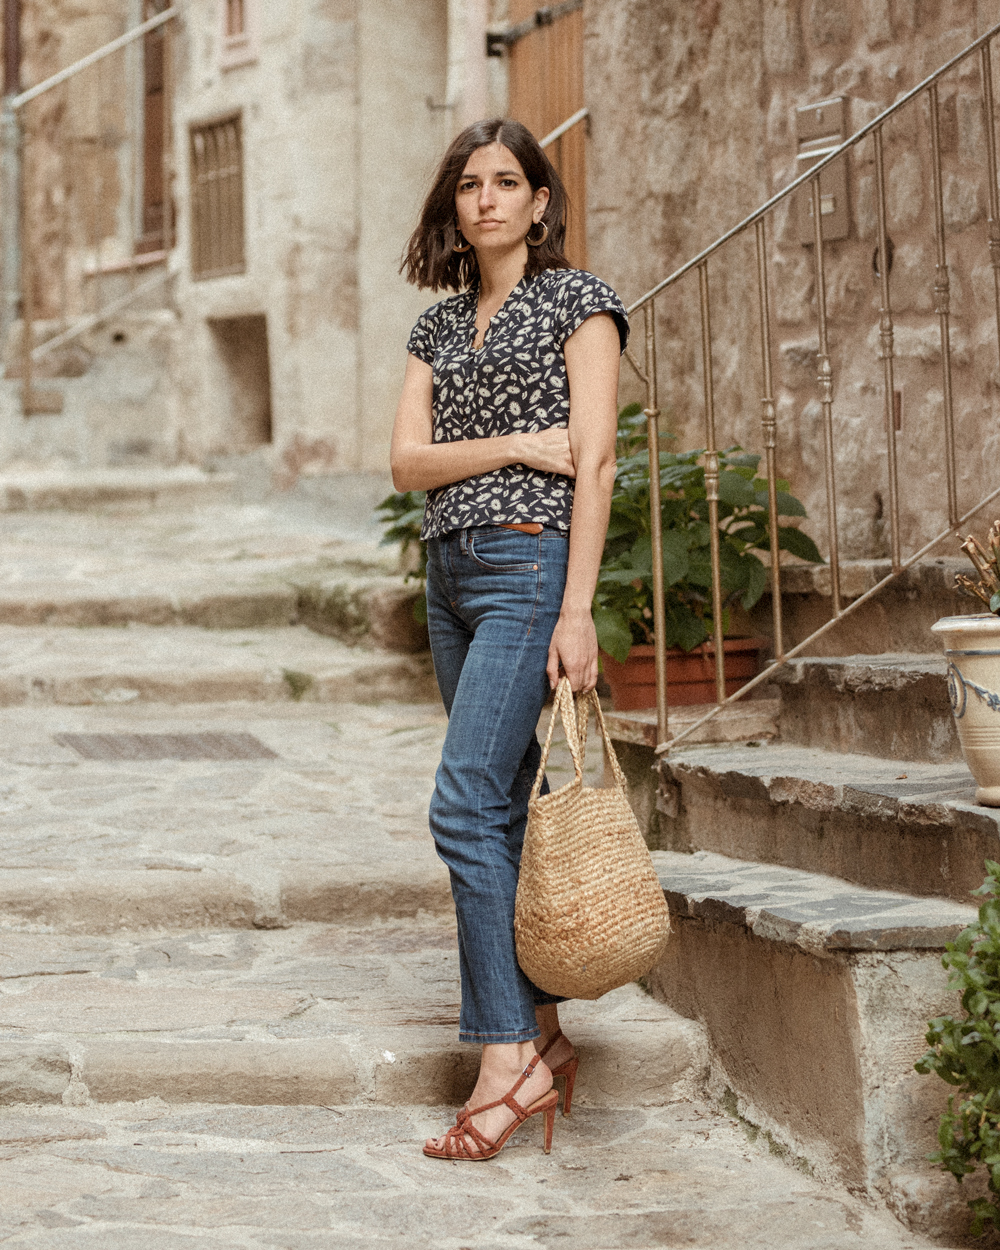 b5c96cf0ed0 vintage-top-blouse-aria-di-bari-french-street-style-fashion-blogger -bocage-mango-stella-forest-summer-spring-outfit-kick-flare-jeans-casual-editorial  (1)